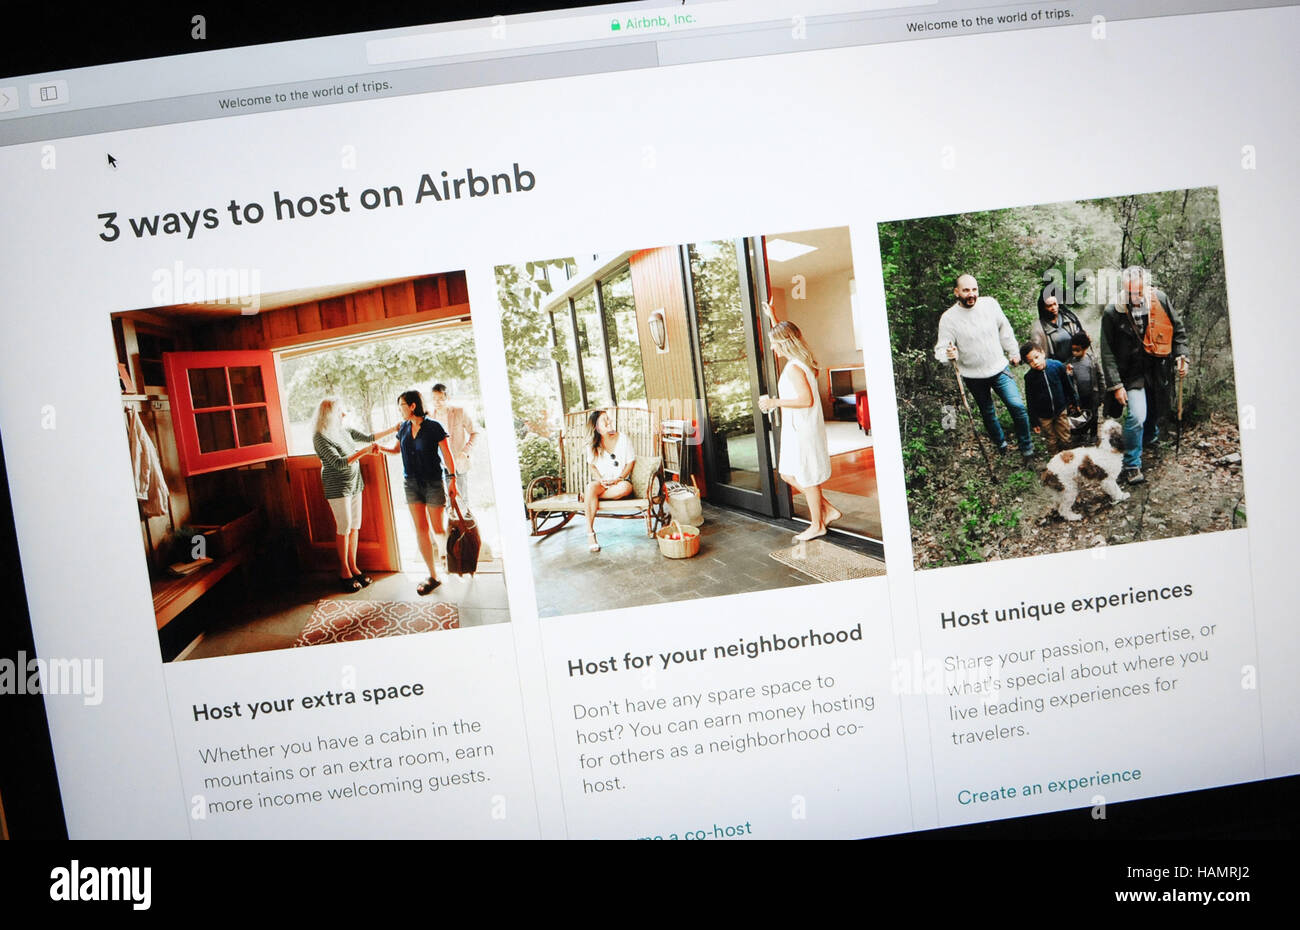 December 1, 2016 - Orlando, Florida, United States - The Airbnb website is seen on a computer screen in Orlando, - Stock Image